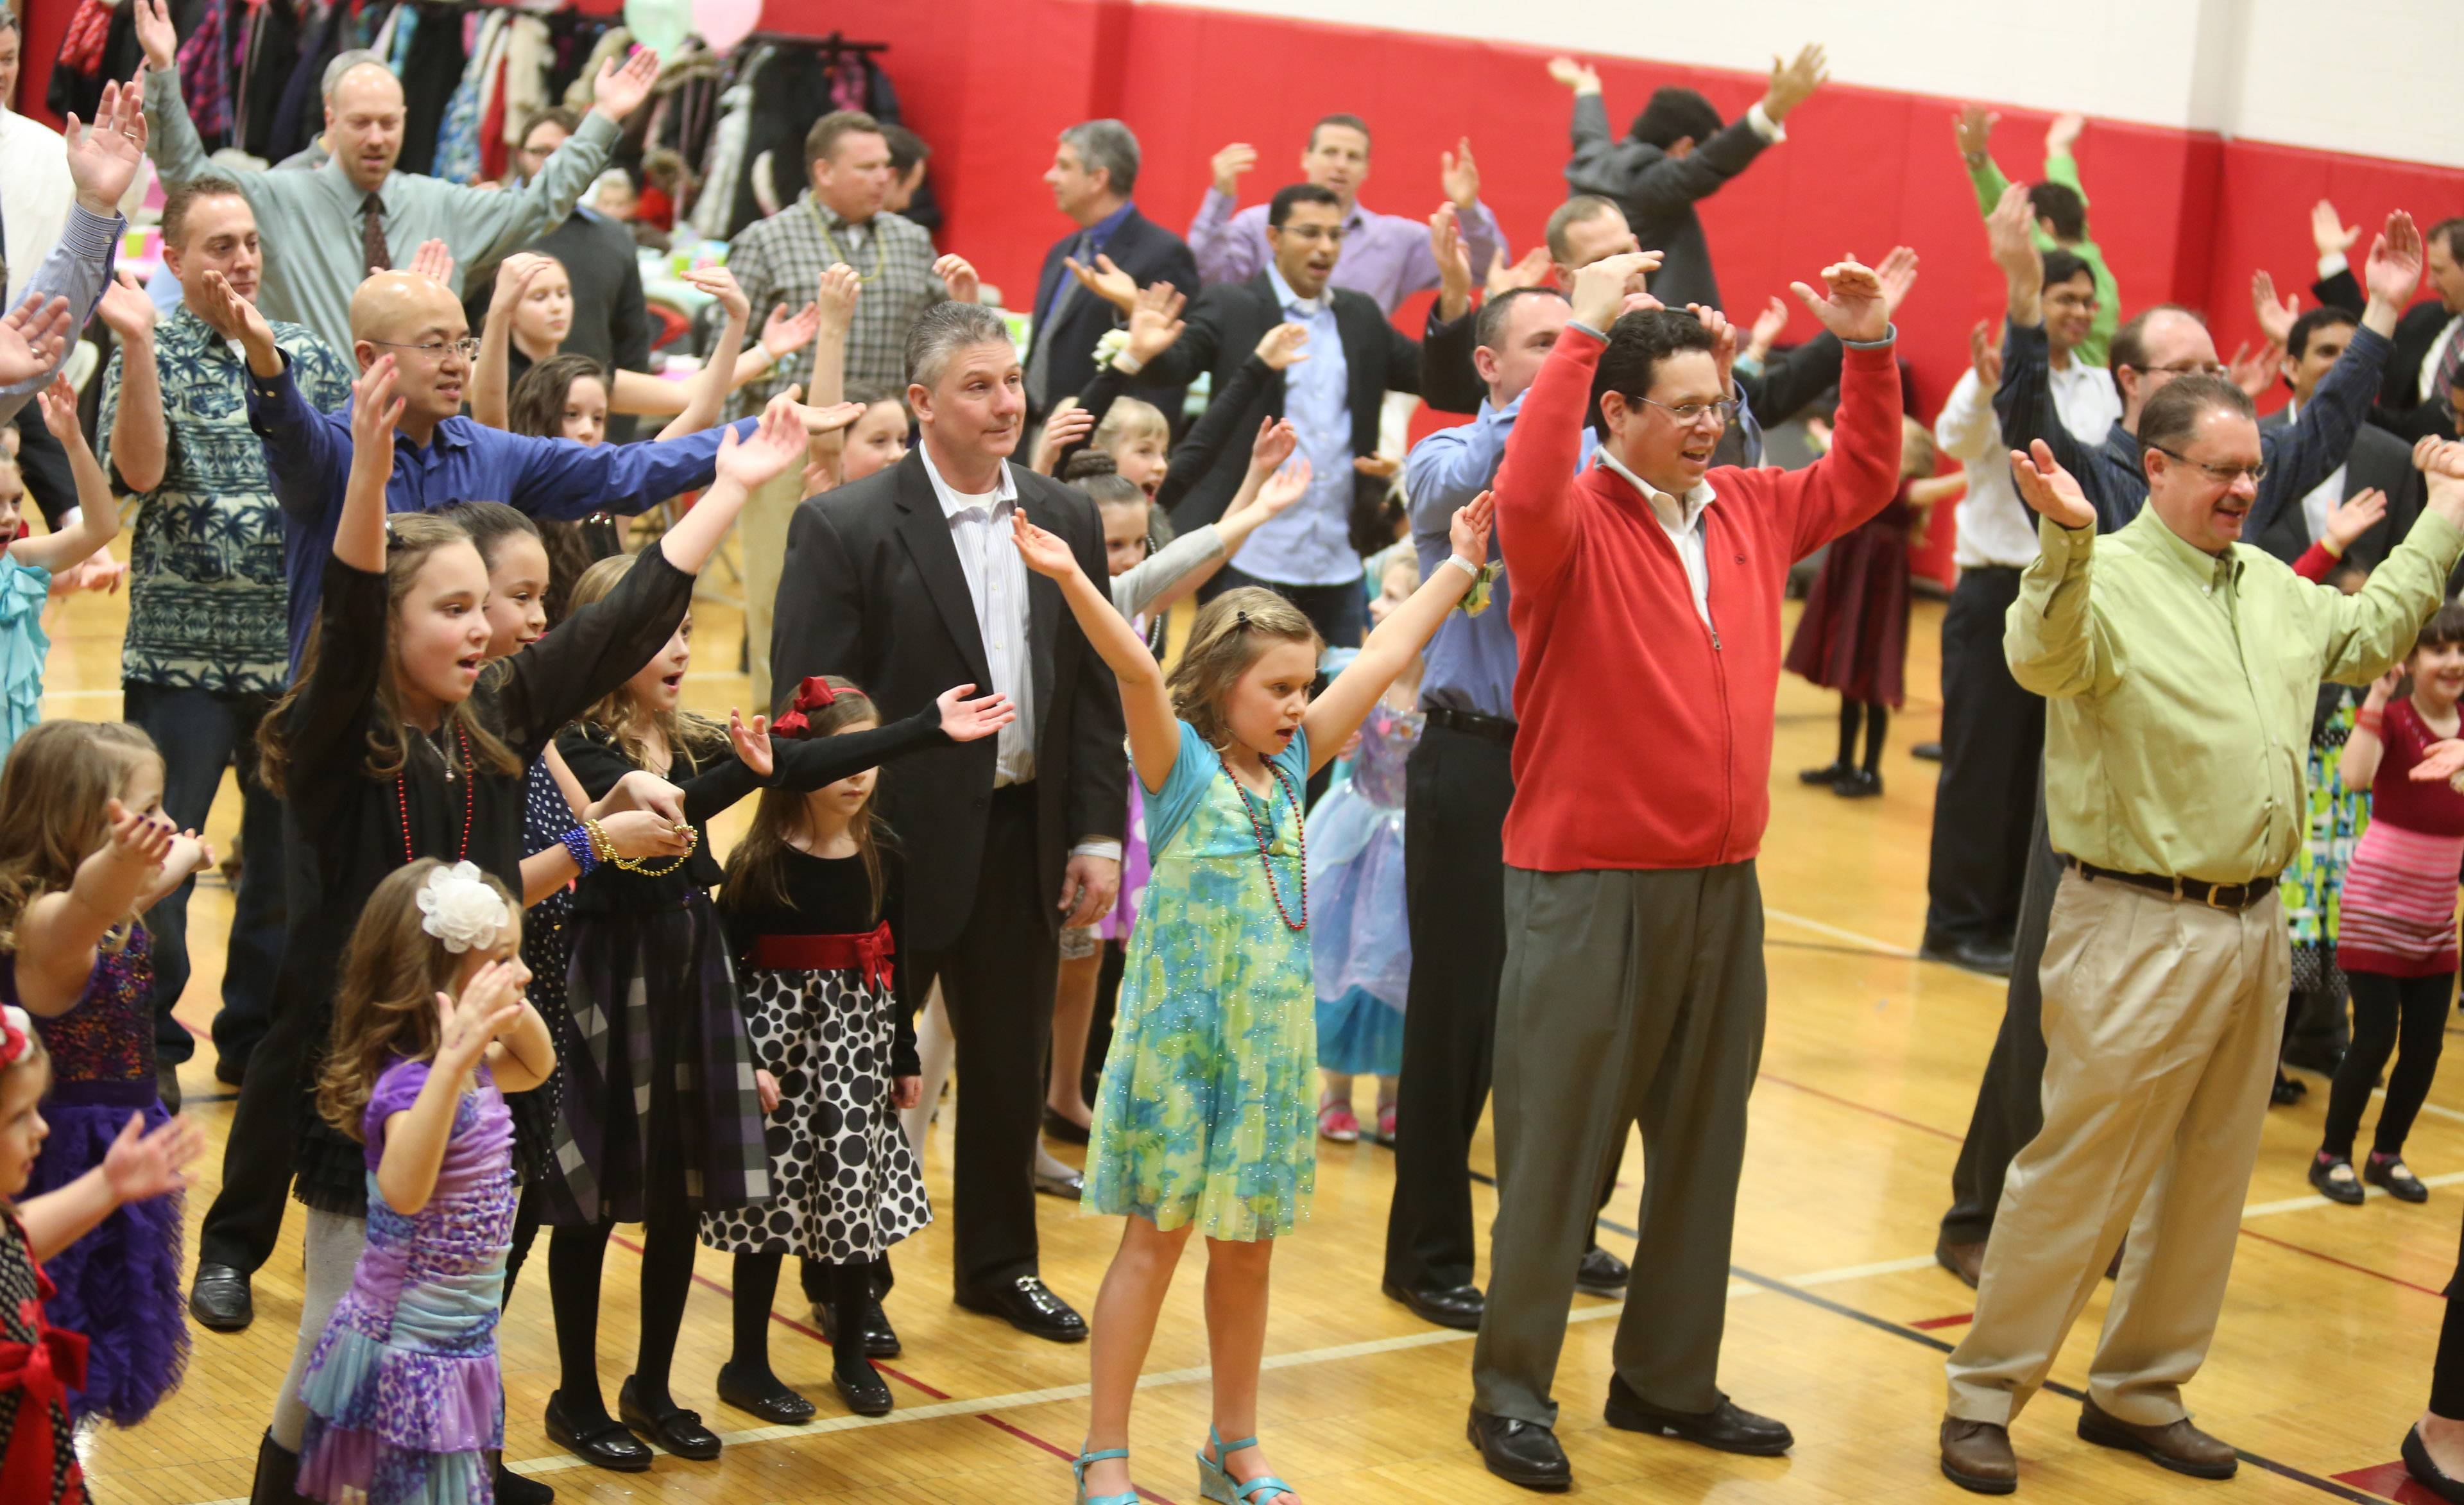 More than 200 attended a dad and daughter dance at the Community Recreation Center on Saturday night in Schaumburg.